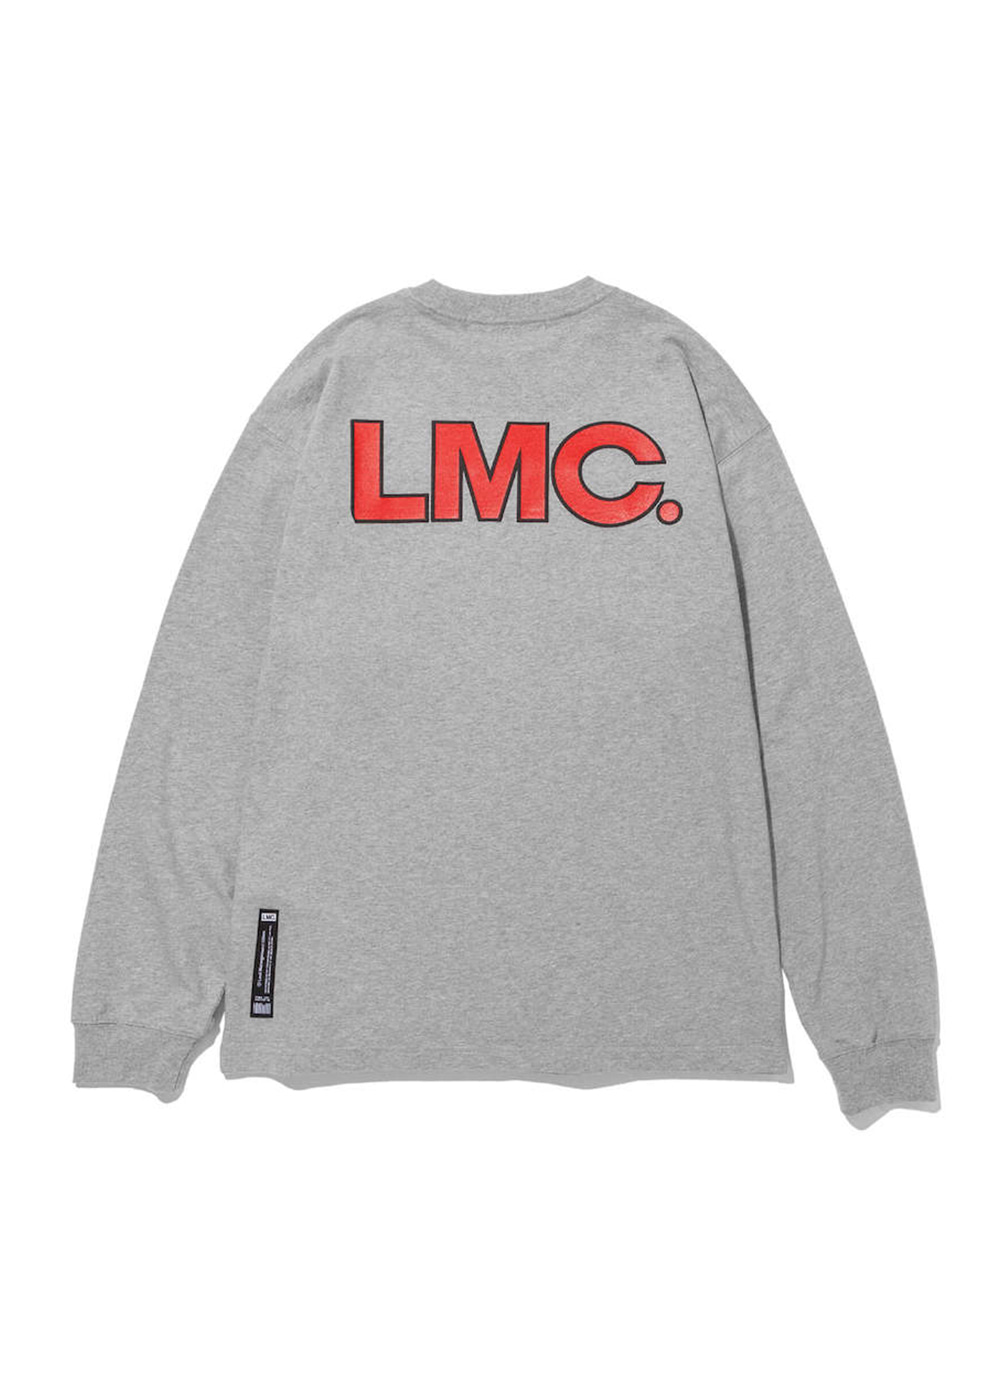 LMC EDGE LONG SLV TEE heather gray